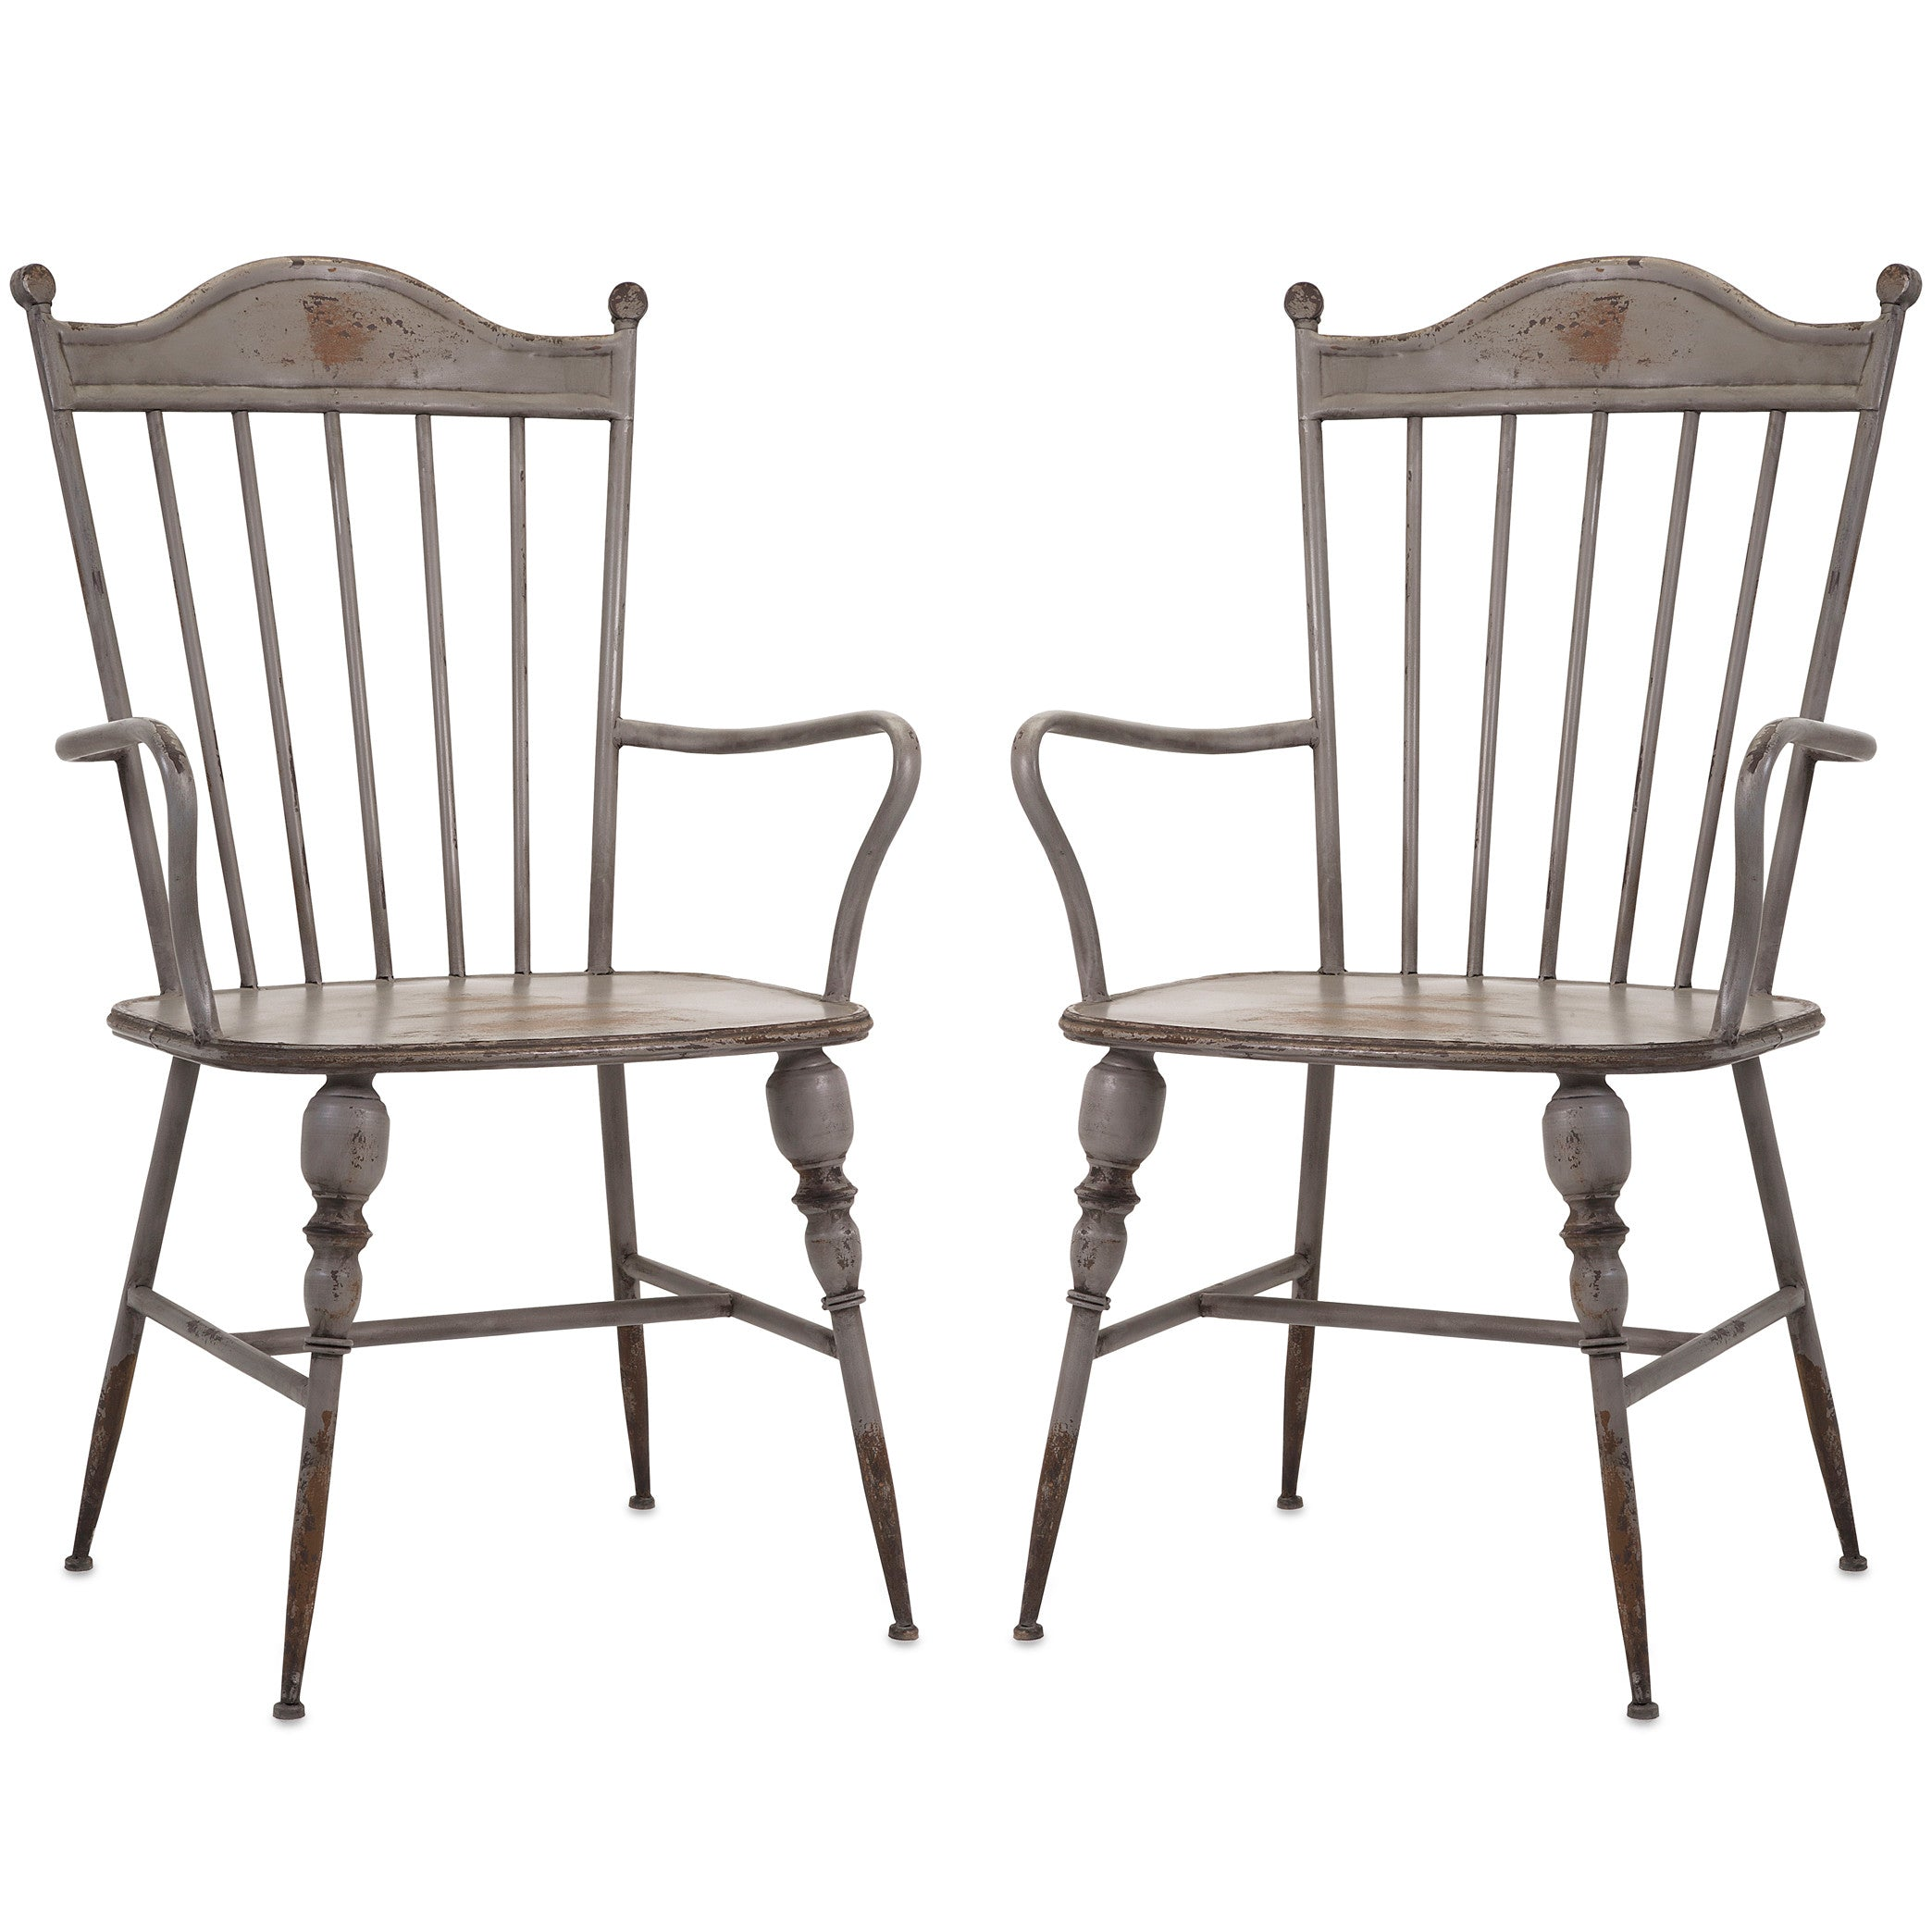 Modern arm chairs - Rustic Gray Metal Farmhouse Industrial Modern Arm Chairs Set Of 2